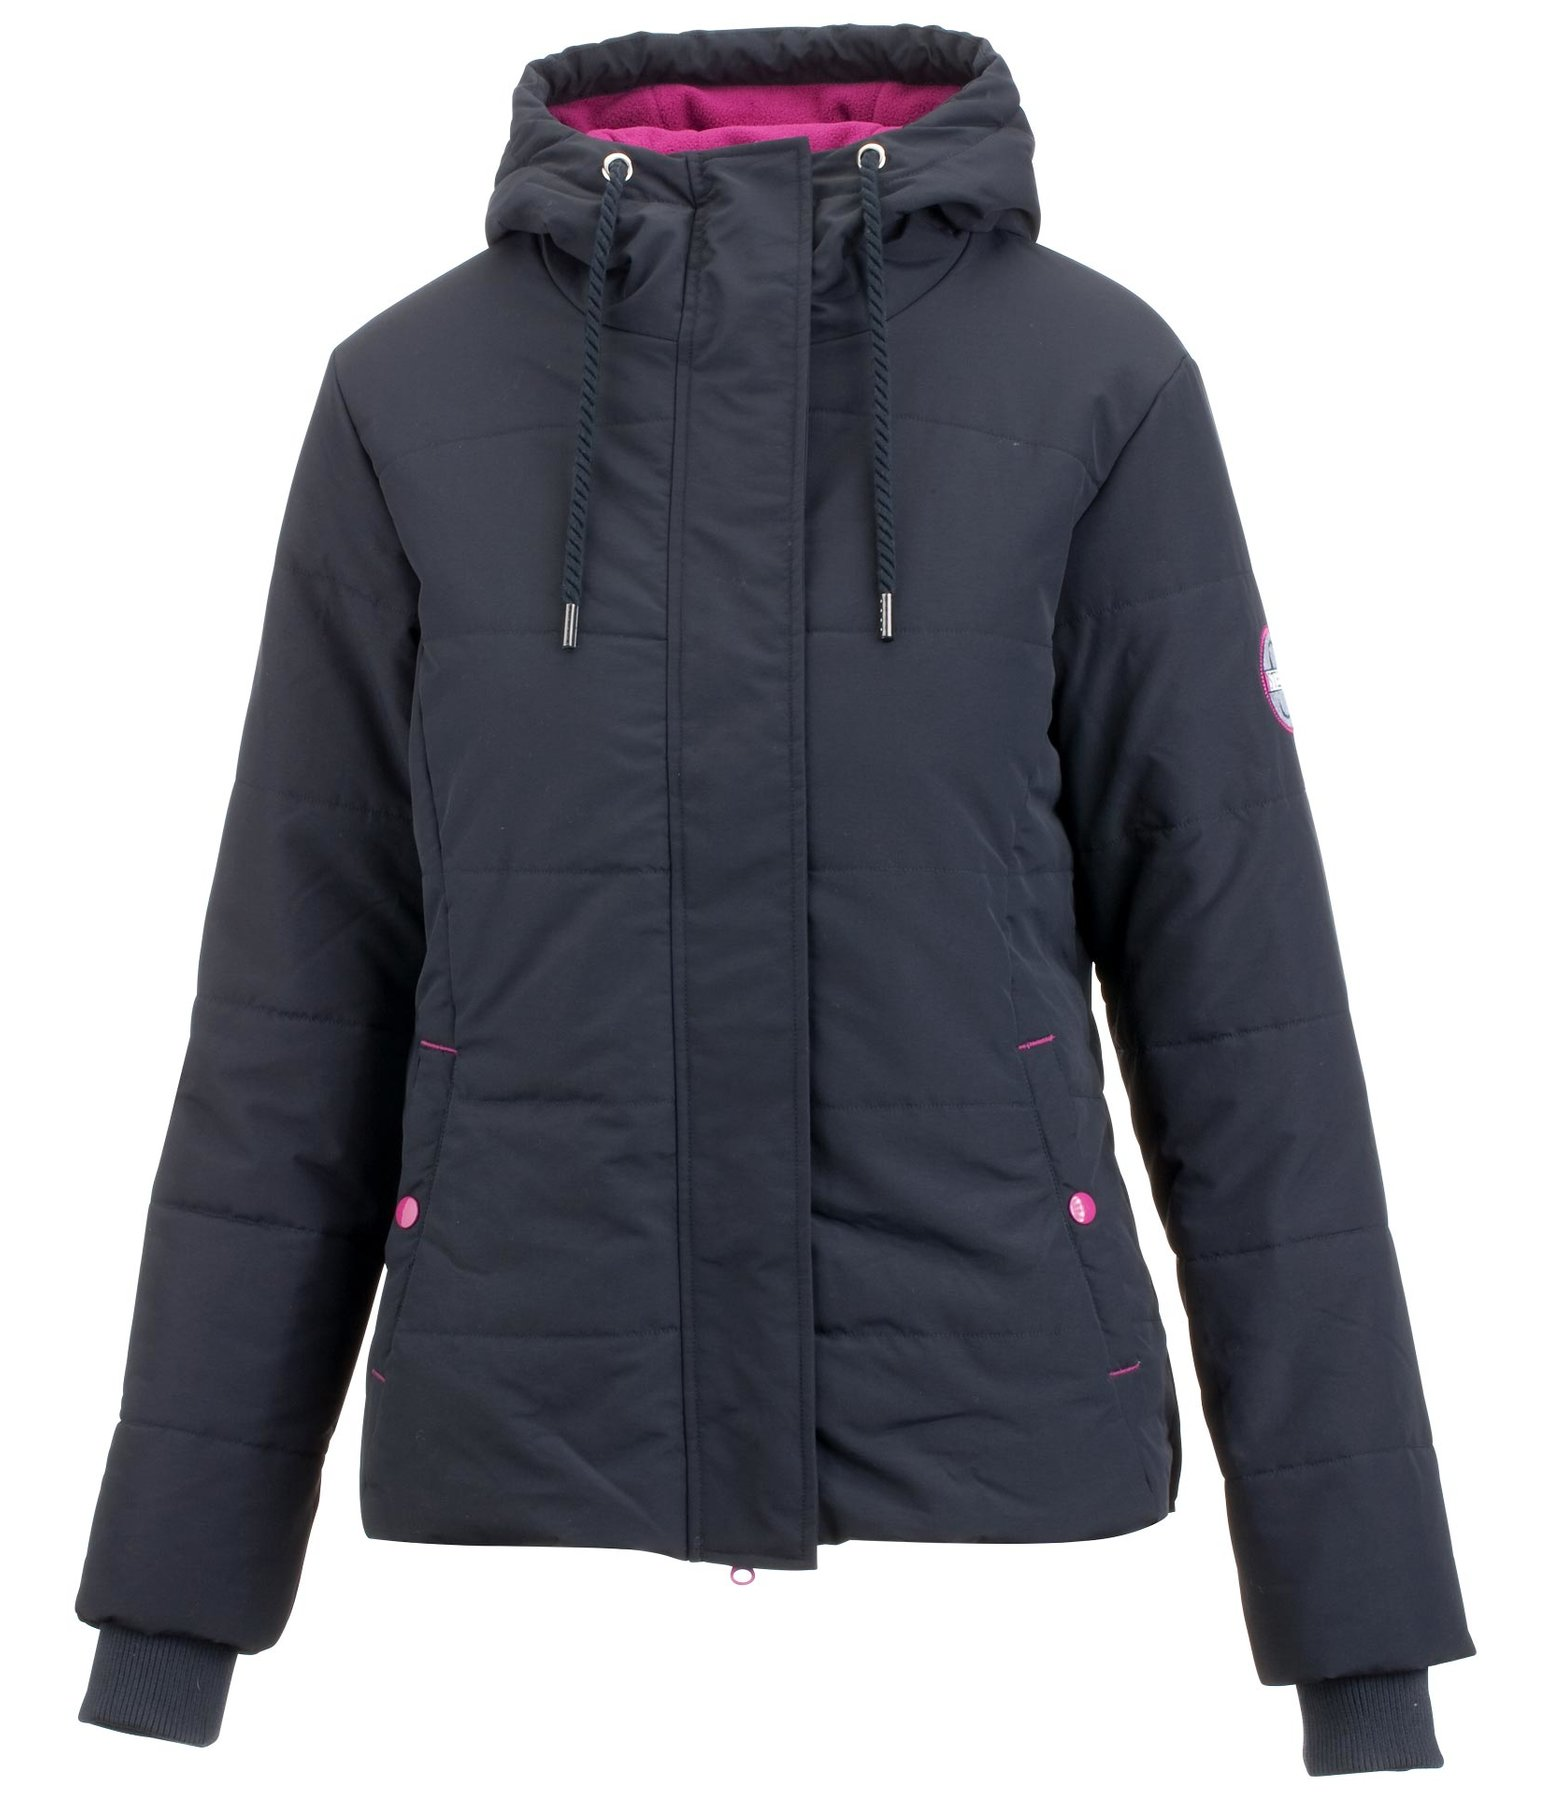 Hooded Riding Jacket Leila Winter Riding Jackets